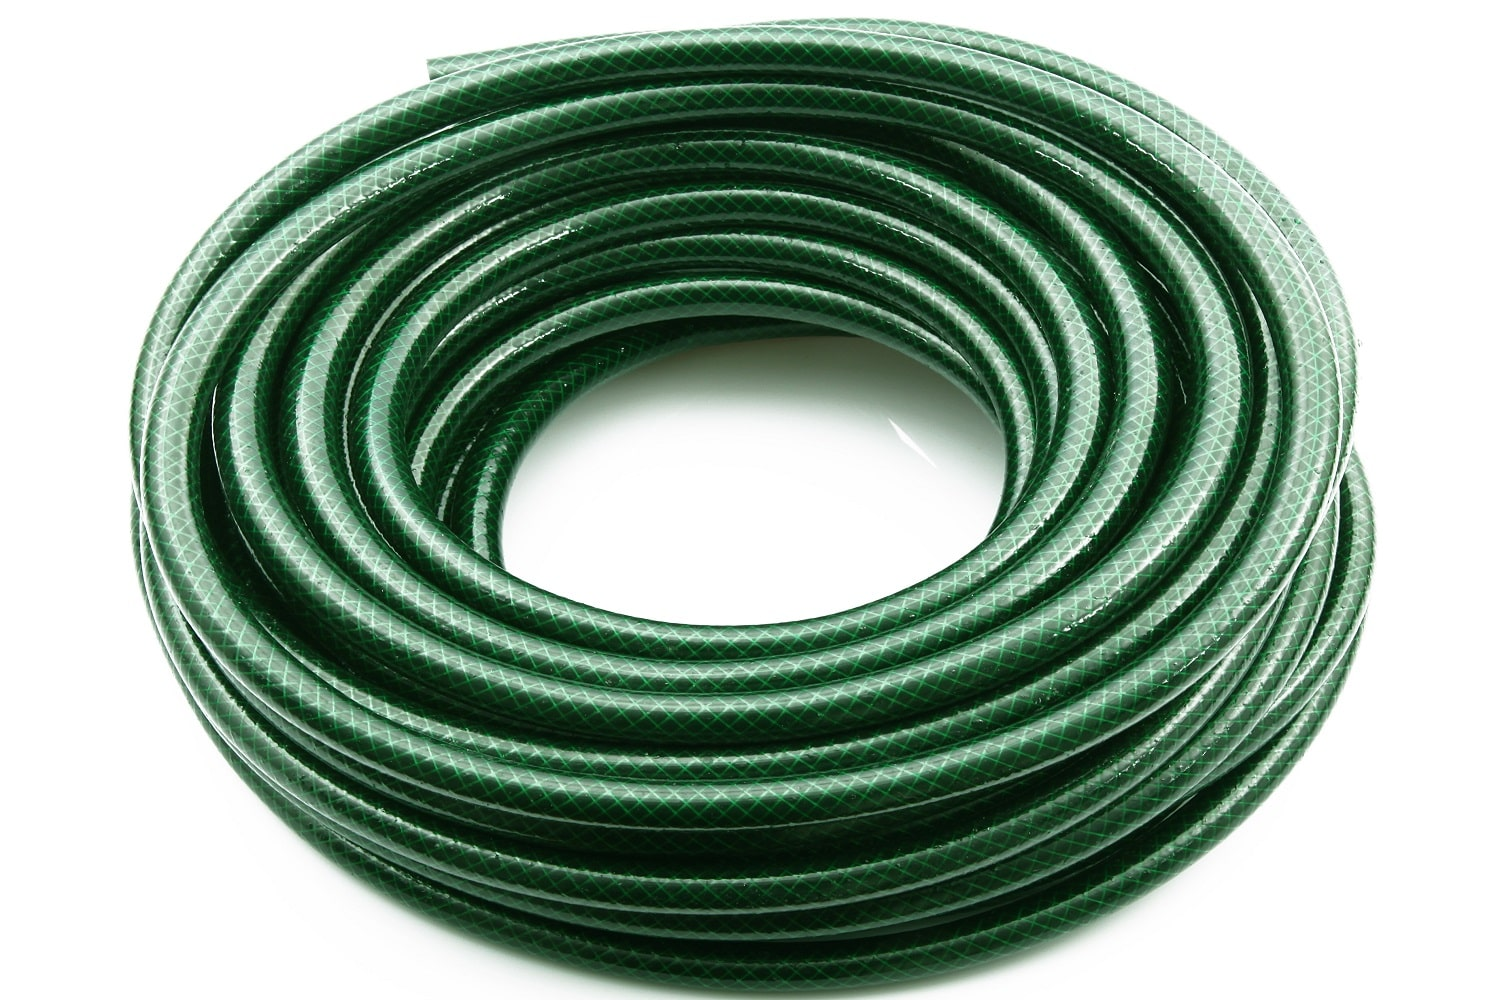 water hose on white background